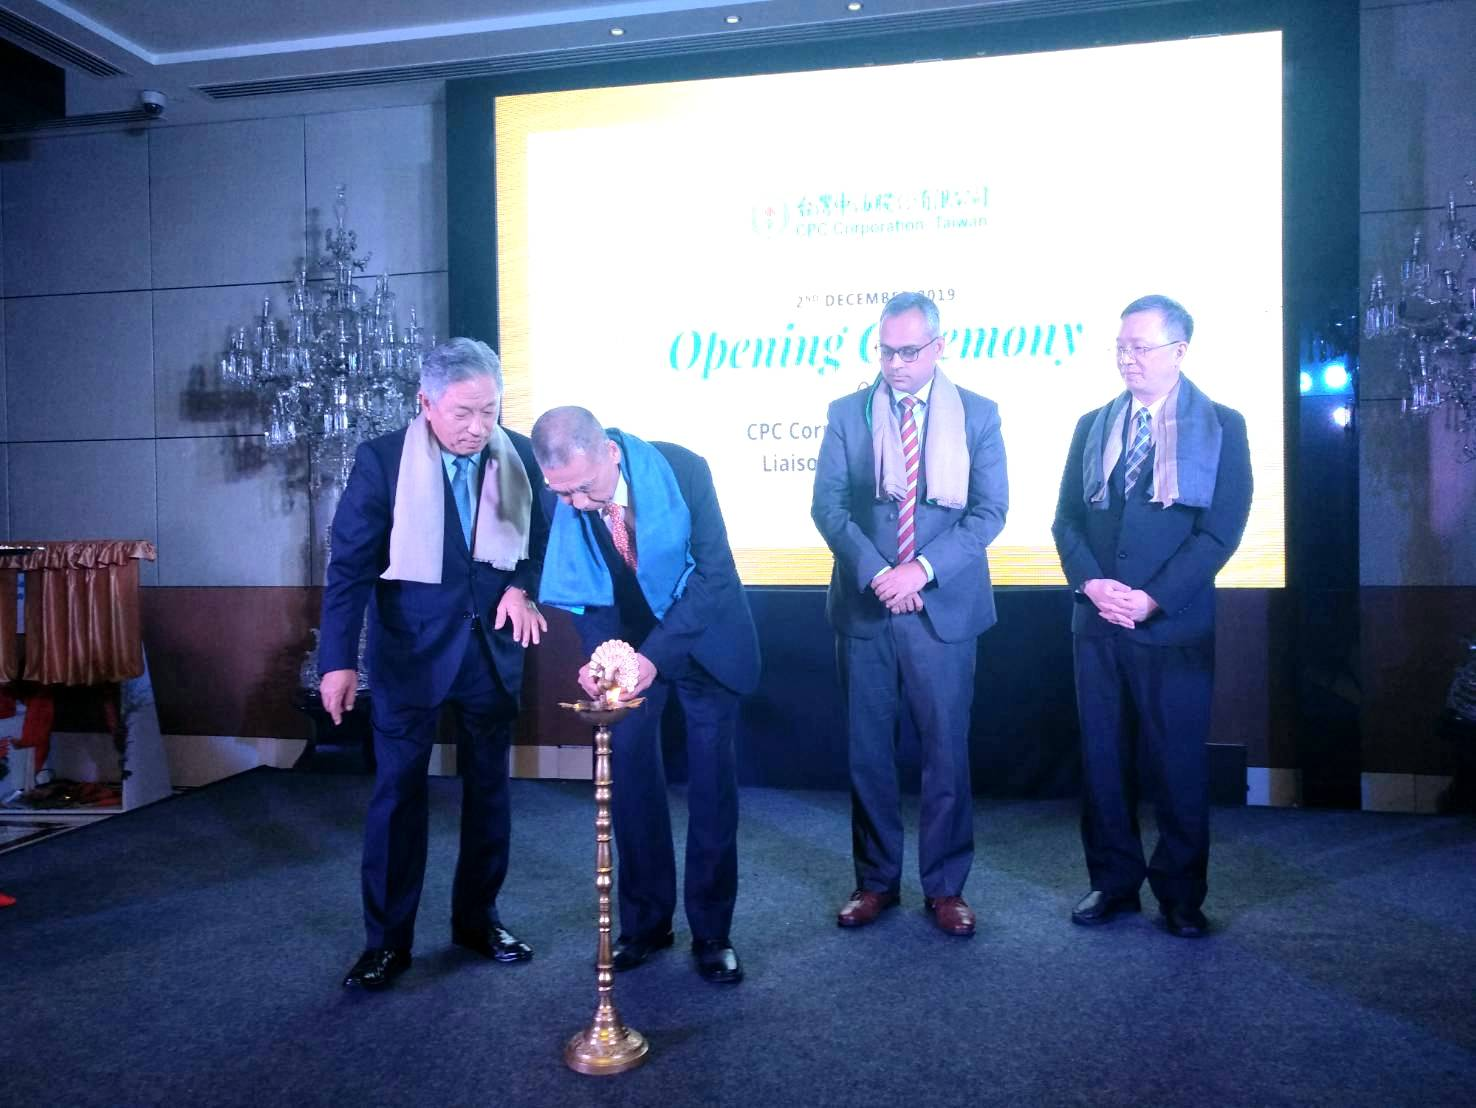 The opening ceremony of the Liaison Office of CPC Taiwan in India was held to announce its establishment and the creating of new opportunities of the New Southbound Policy